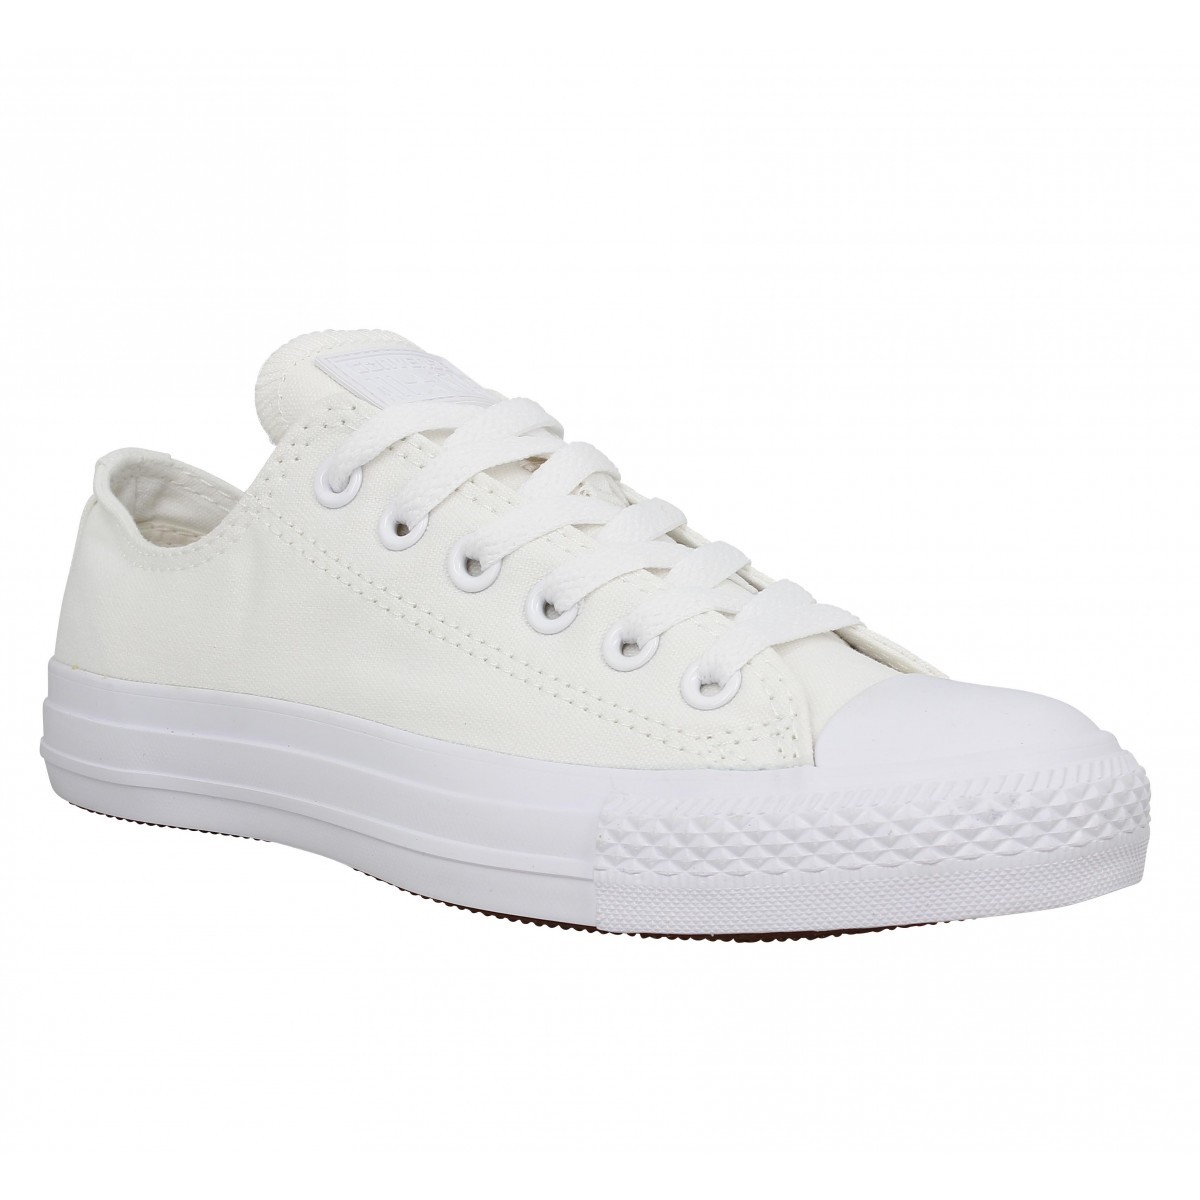 Baskets CONVERSE Chuck Taylor All Star toile Femme Mono Blanc